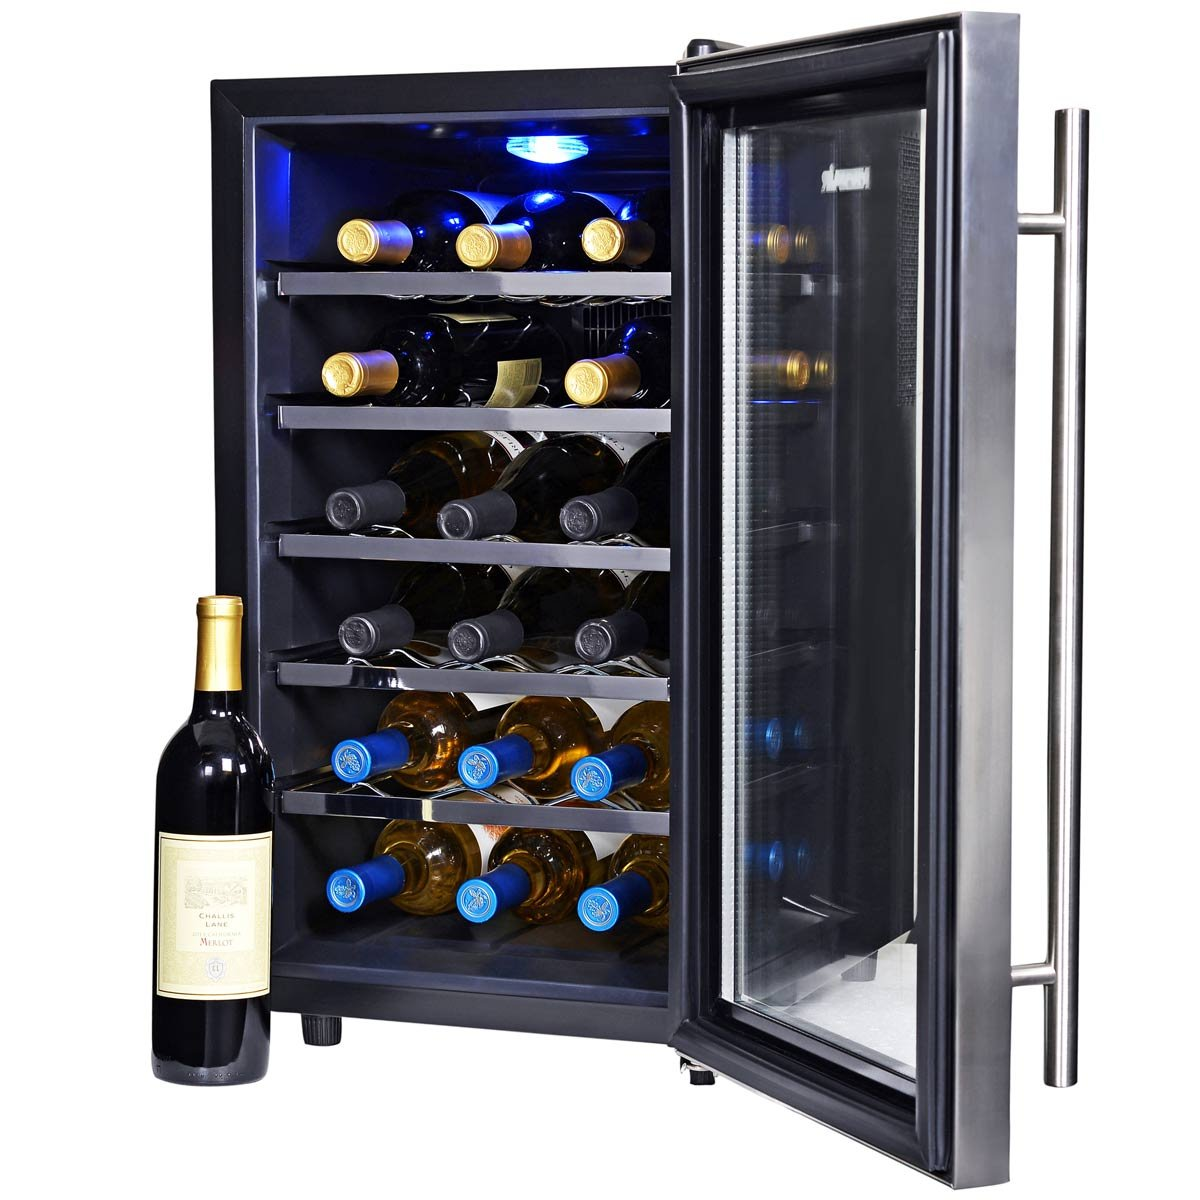 NewAir AW-181E 18 Bottle Thermoelectric Wine Cooler, Black by NewAir (Image #4)